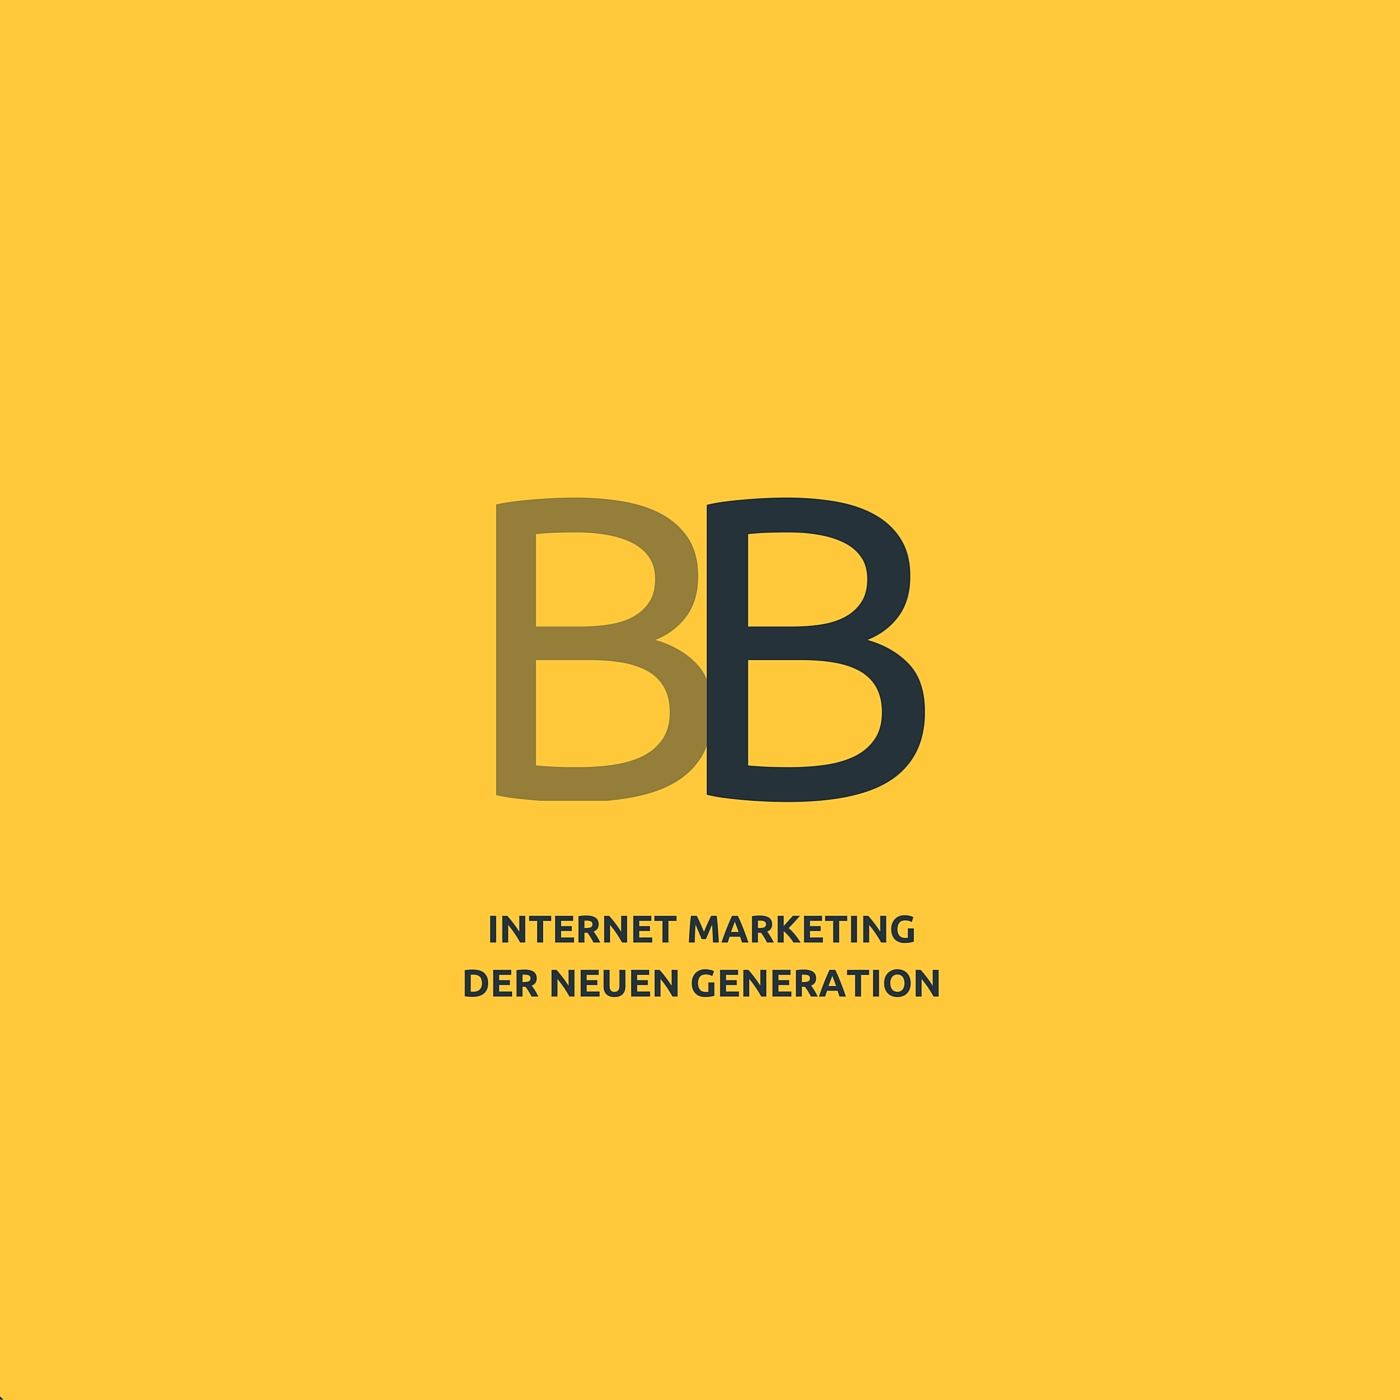 BB - ONLINE MARKETING DER NEUEN GENERATION